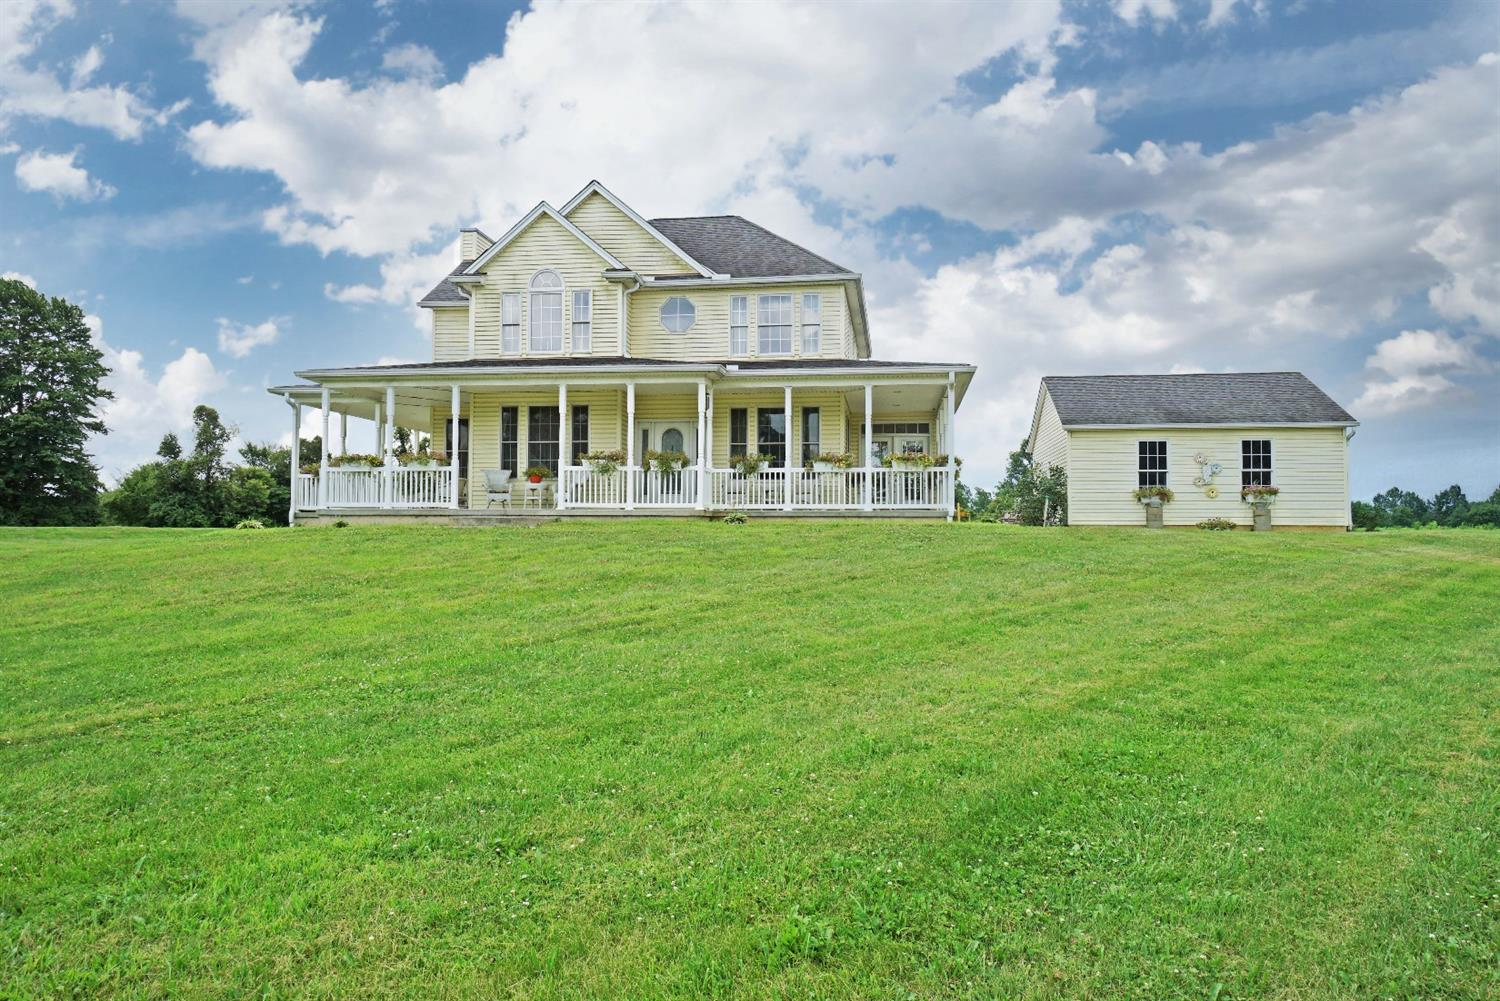 3131 Lindale Mount Holly Rd Monroe Twp., OH